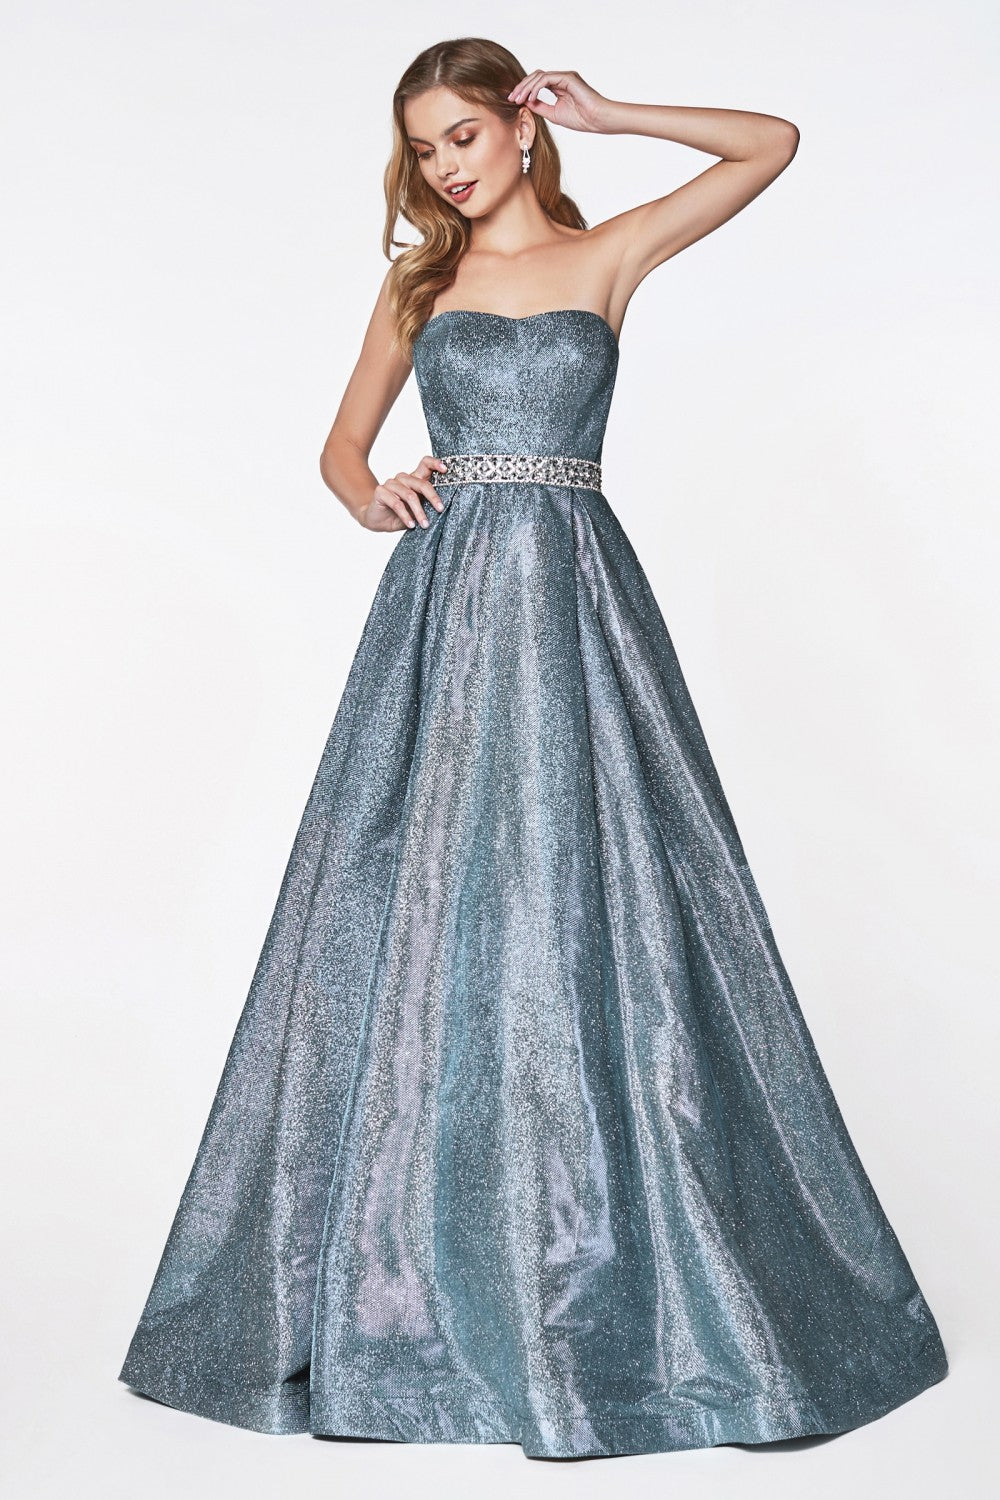 Strapless Glitter Ballgown With Beaded Belt And Soft Sweatheart Neckine